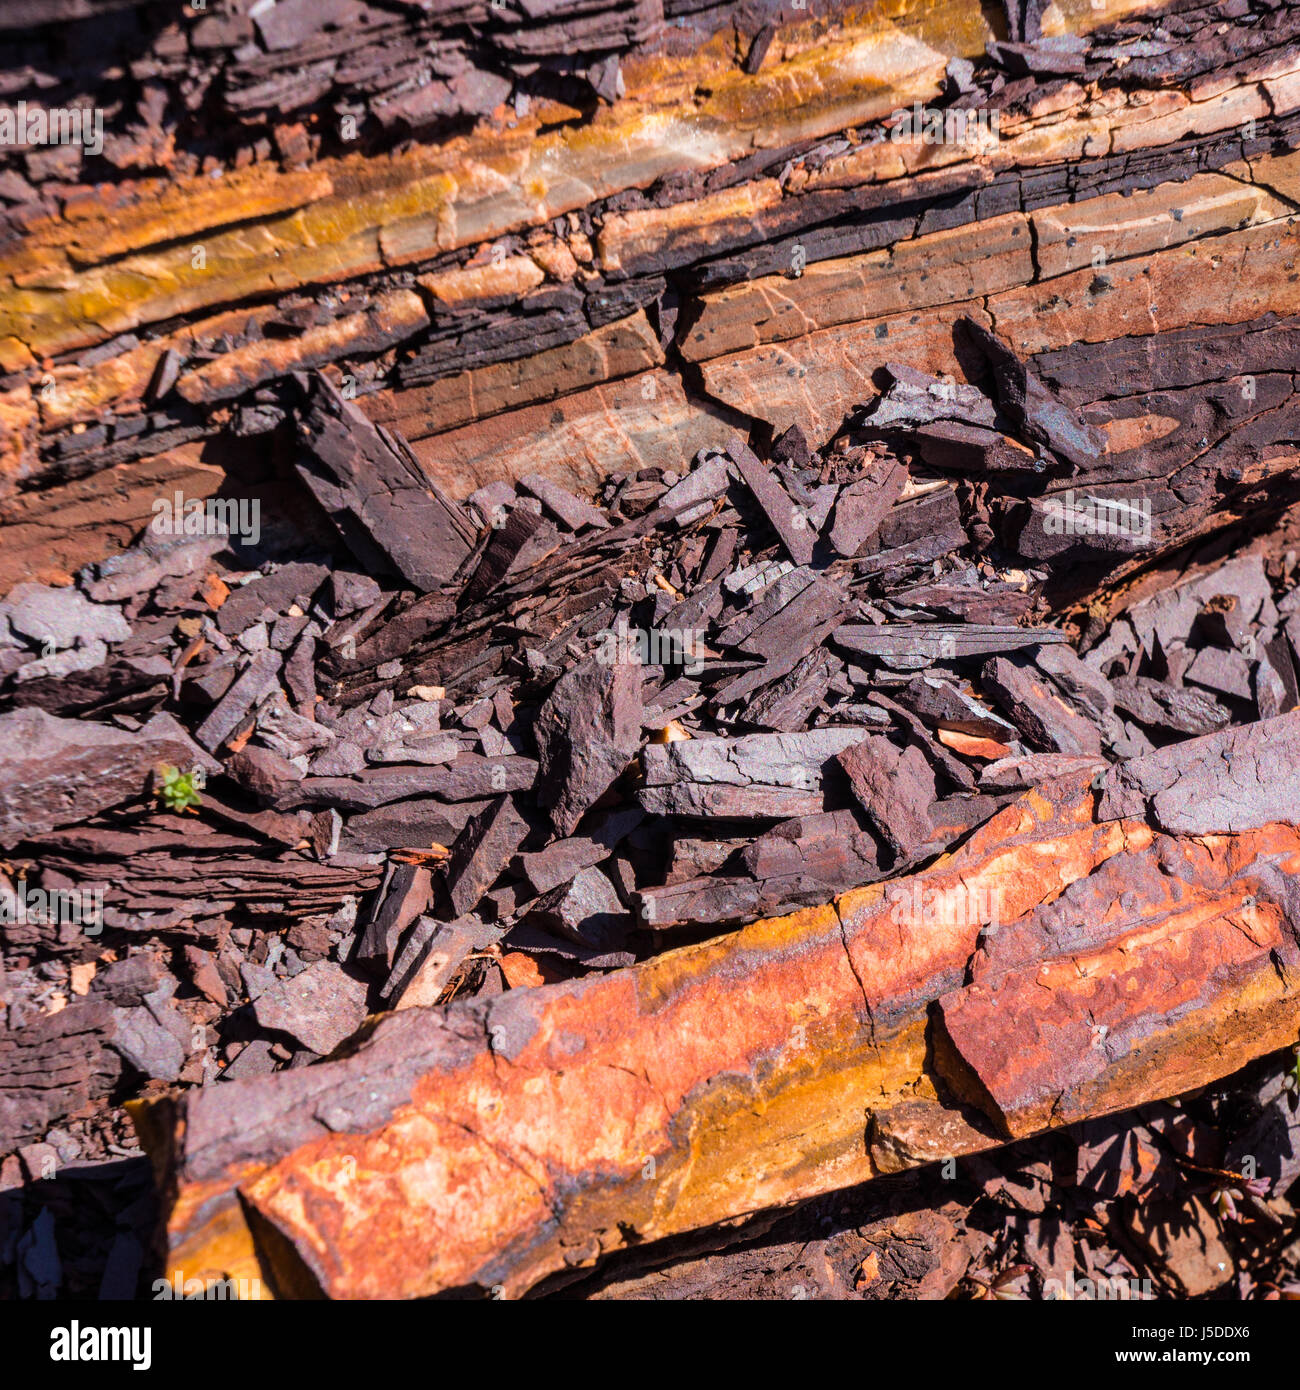 natural hematite specimen is a common mineral form of iron oxide - Stock Image